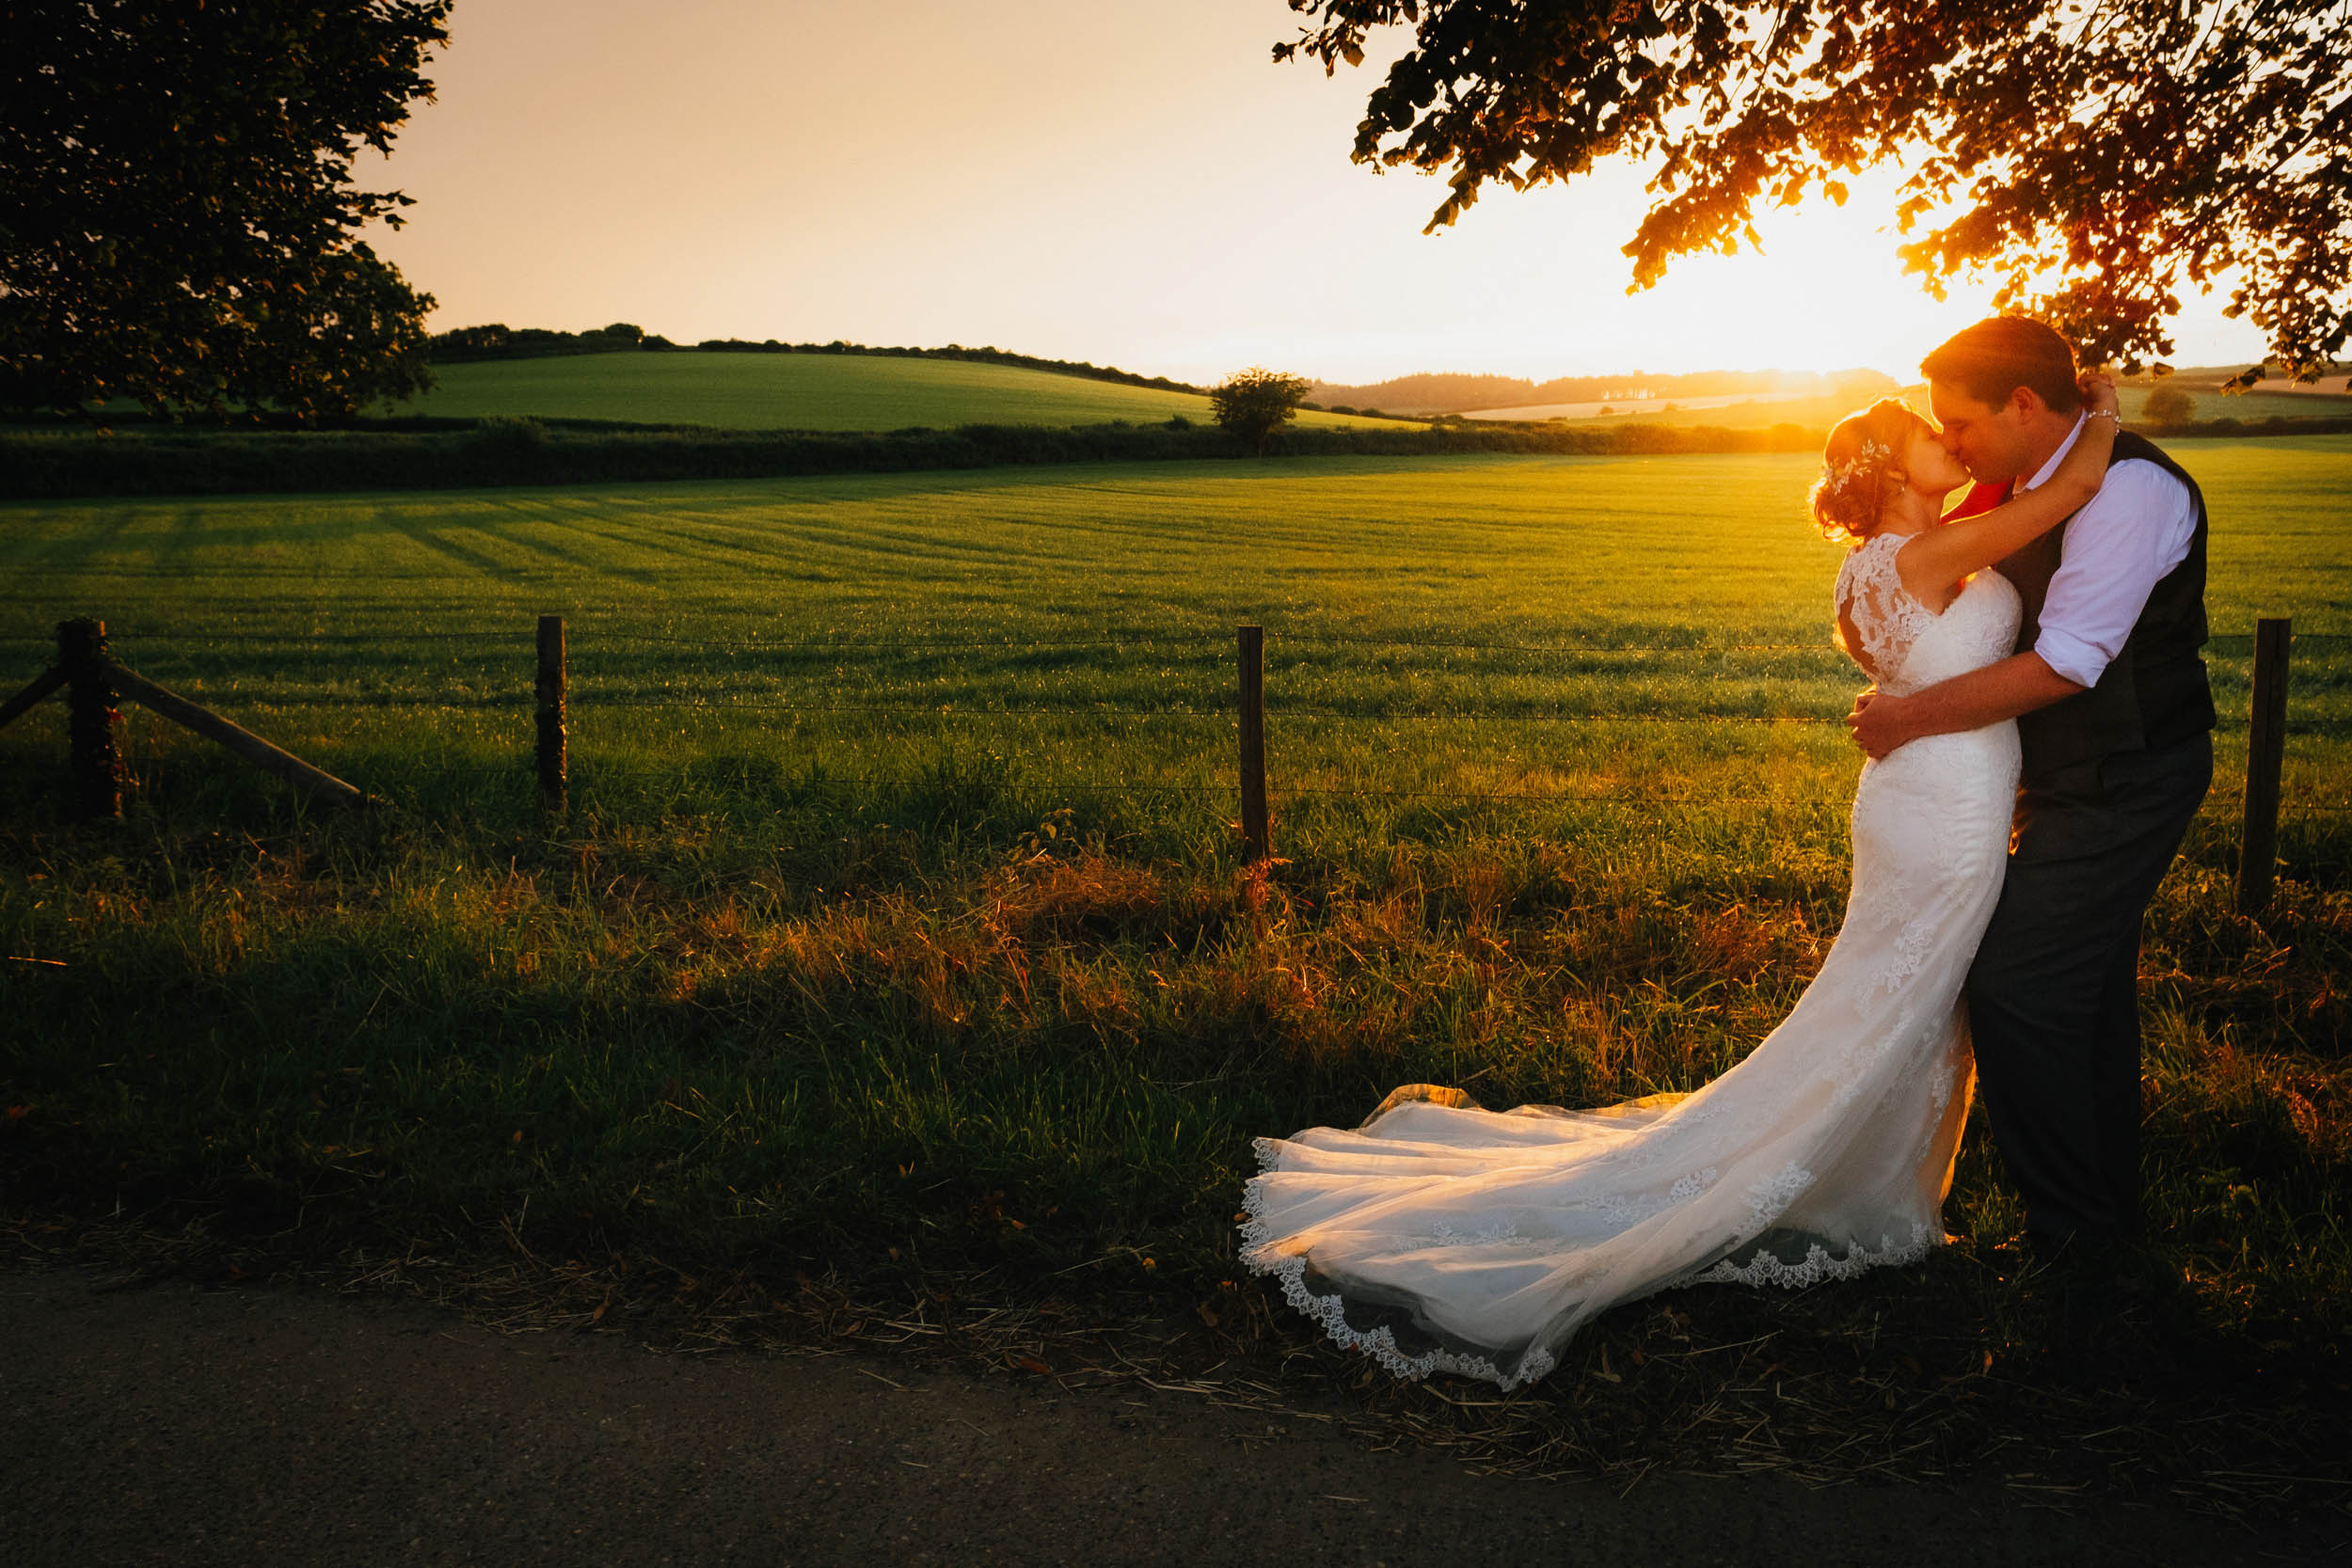 a photograph at a Bristol wedding where bride and groom kiss at golden hour